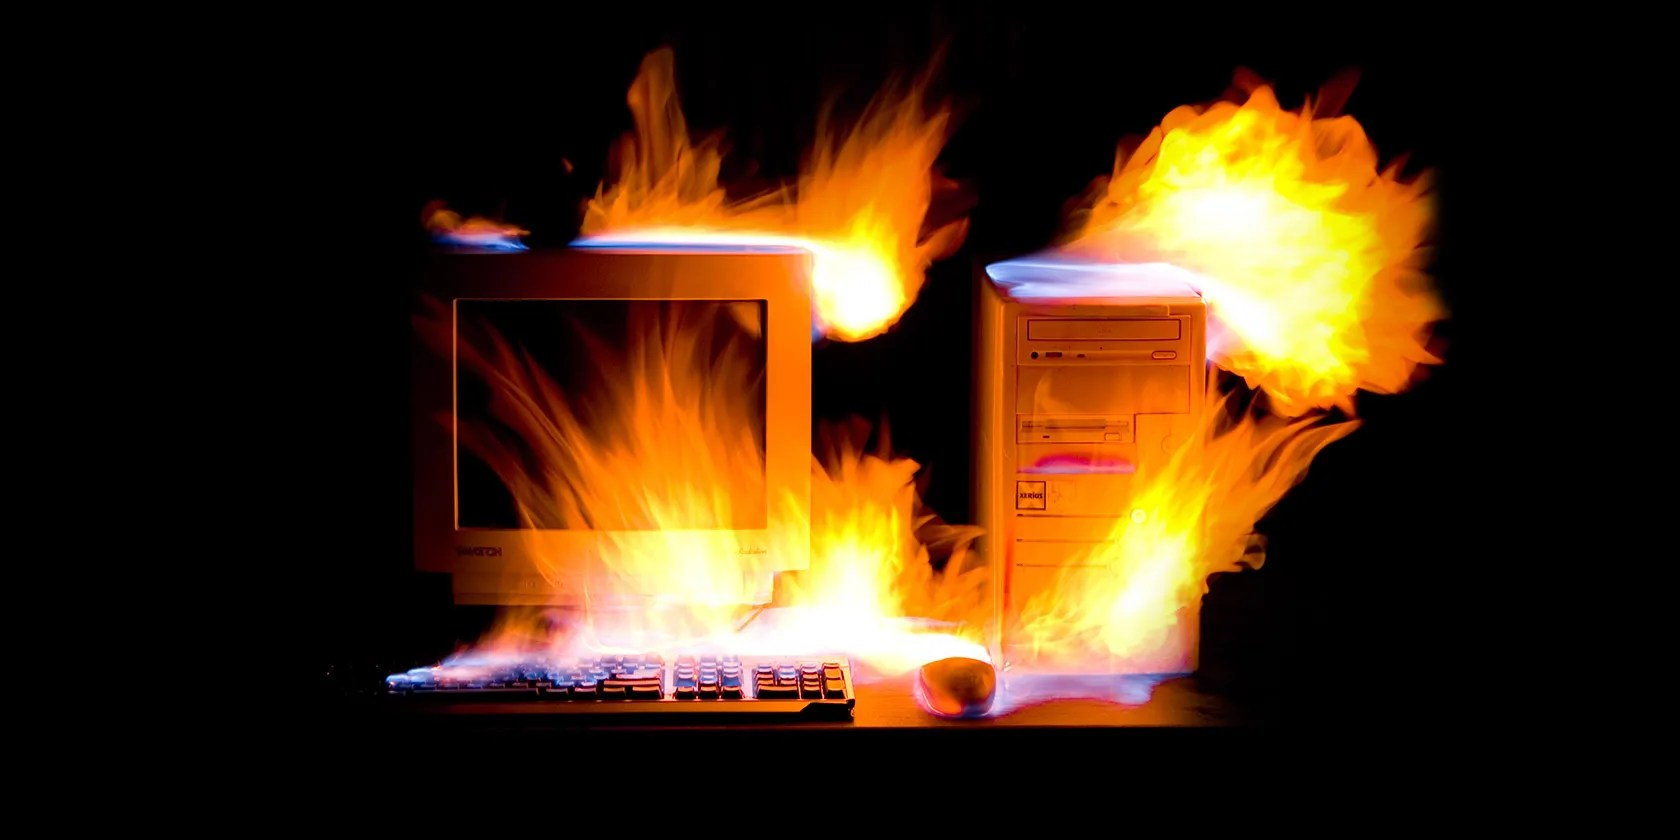 PC-on-fire